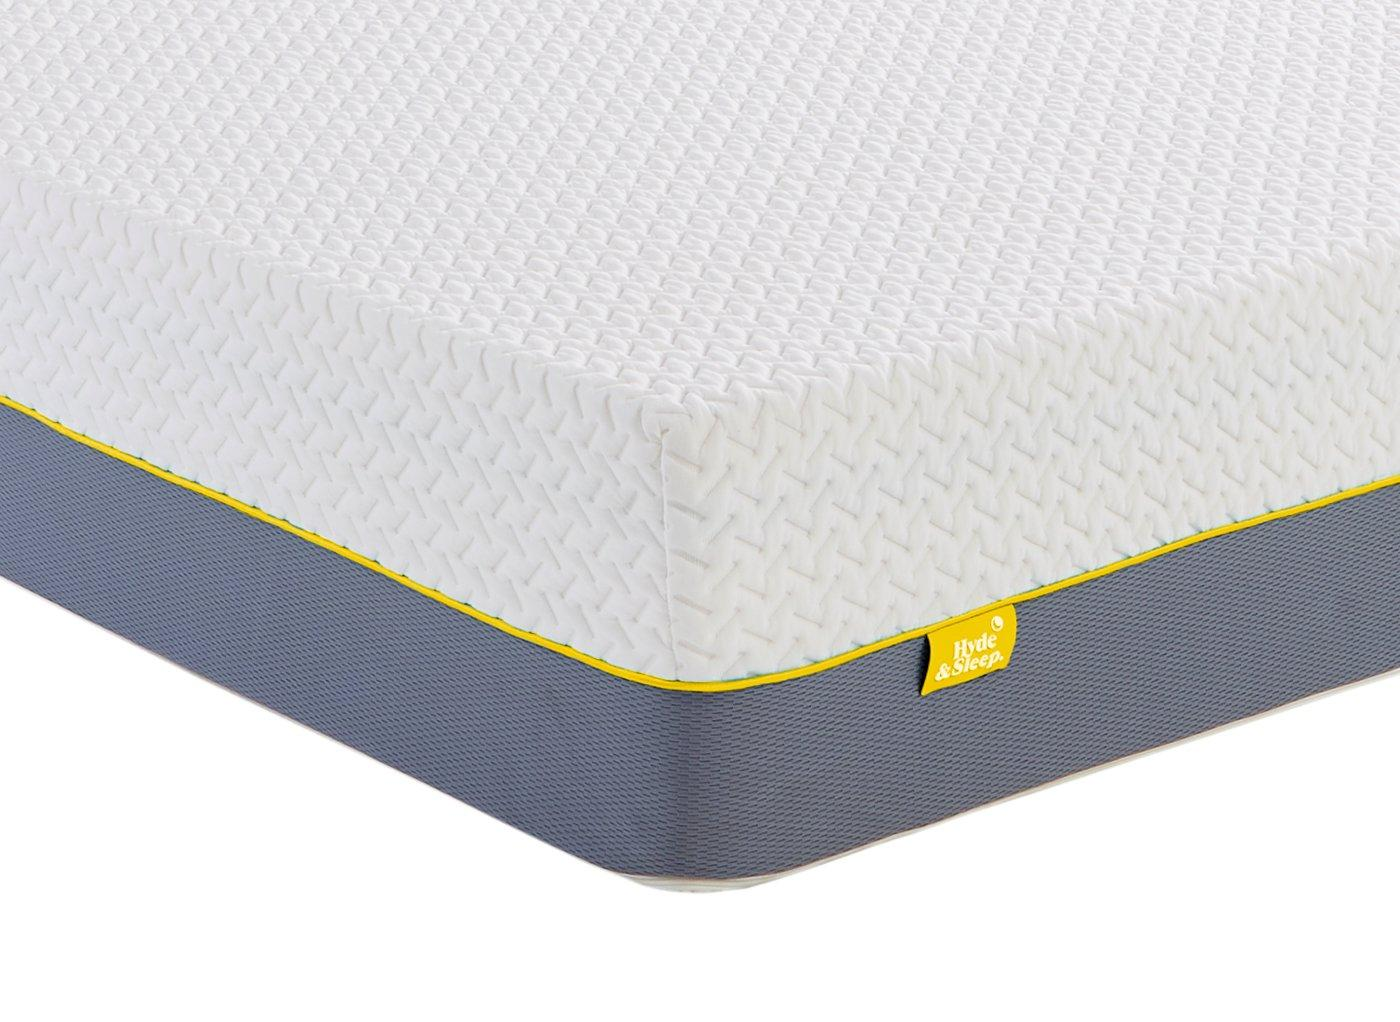 Hyde & sleep hybrid lemon mattress 3'0 single